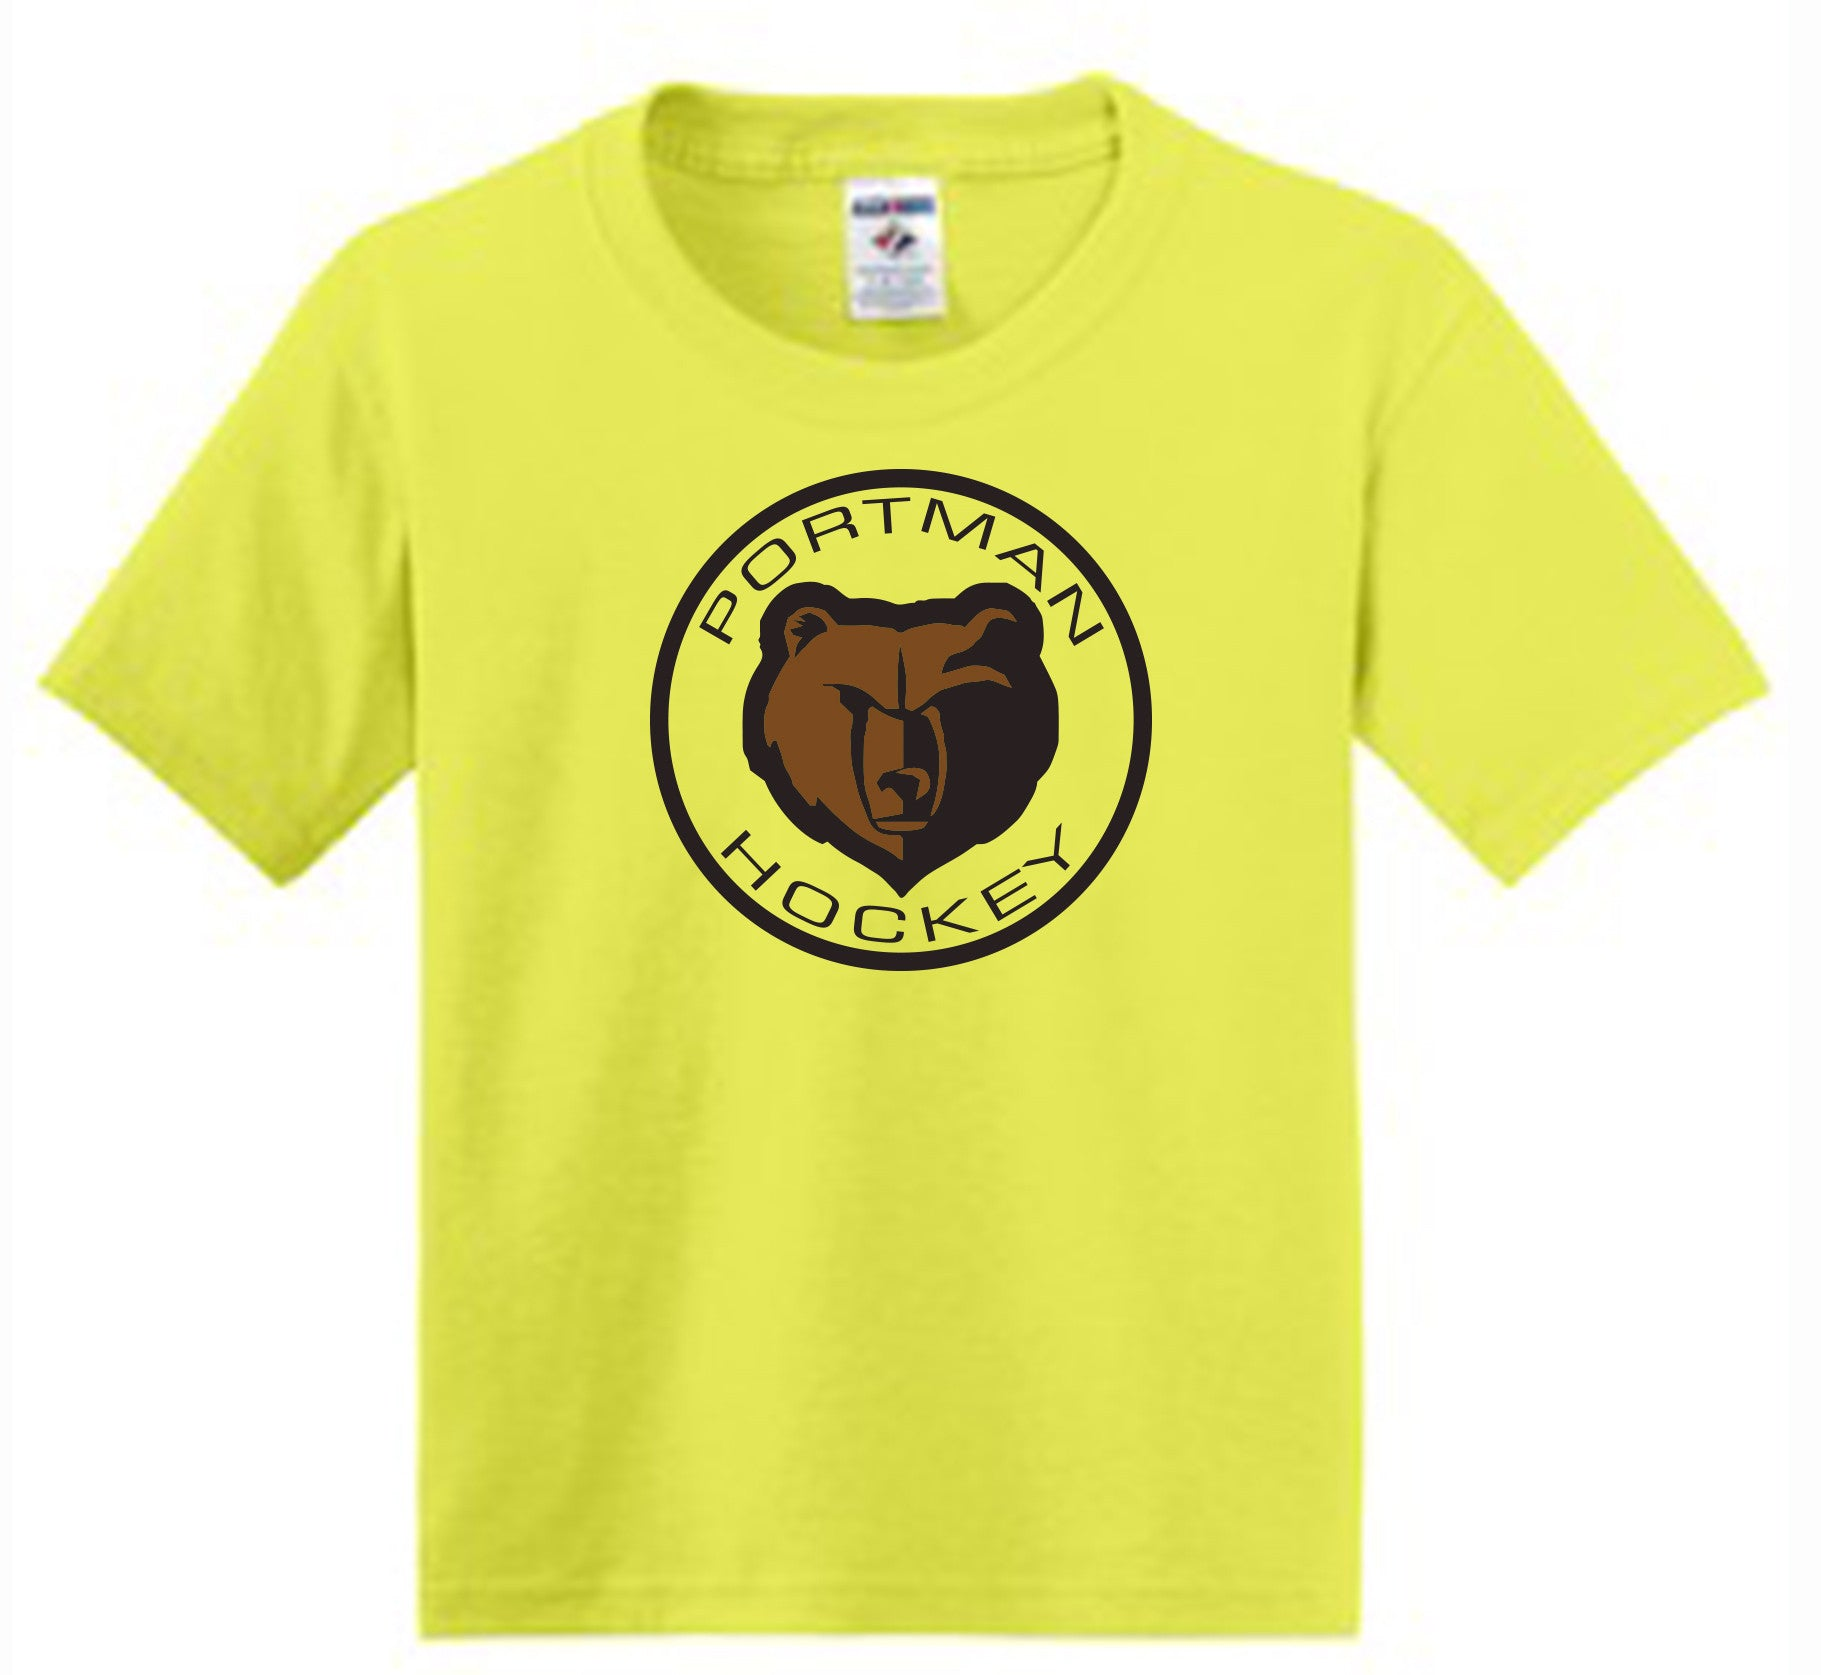 JERZEES® - Youth Dri-Power® Active 50/50 Cotton/Poly T-Shirt. Neon Yellow #29B